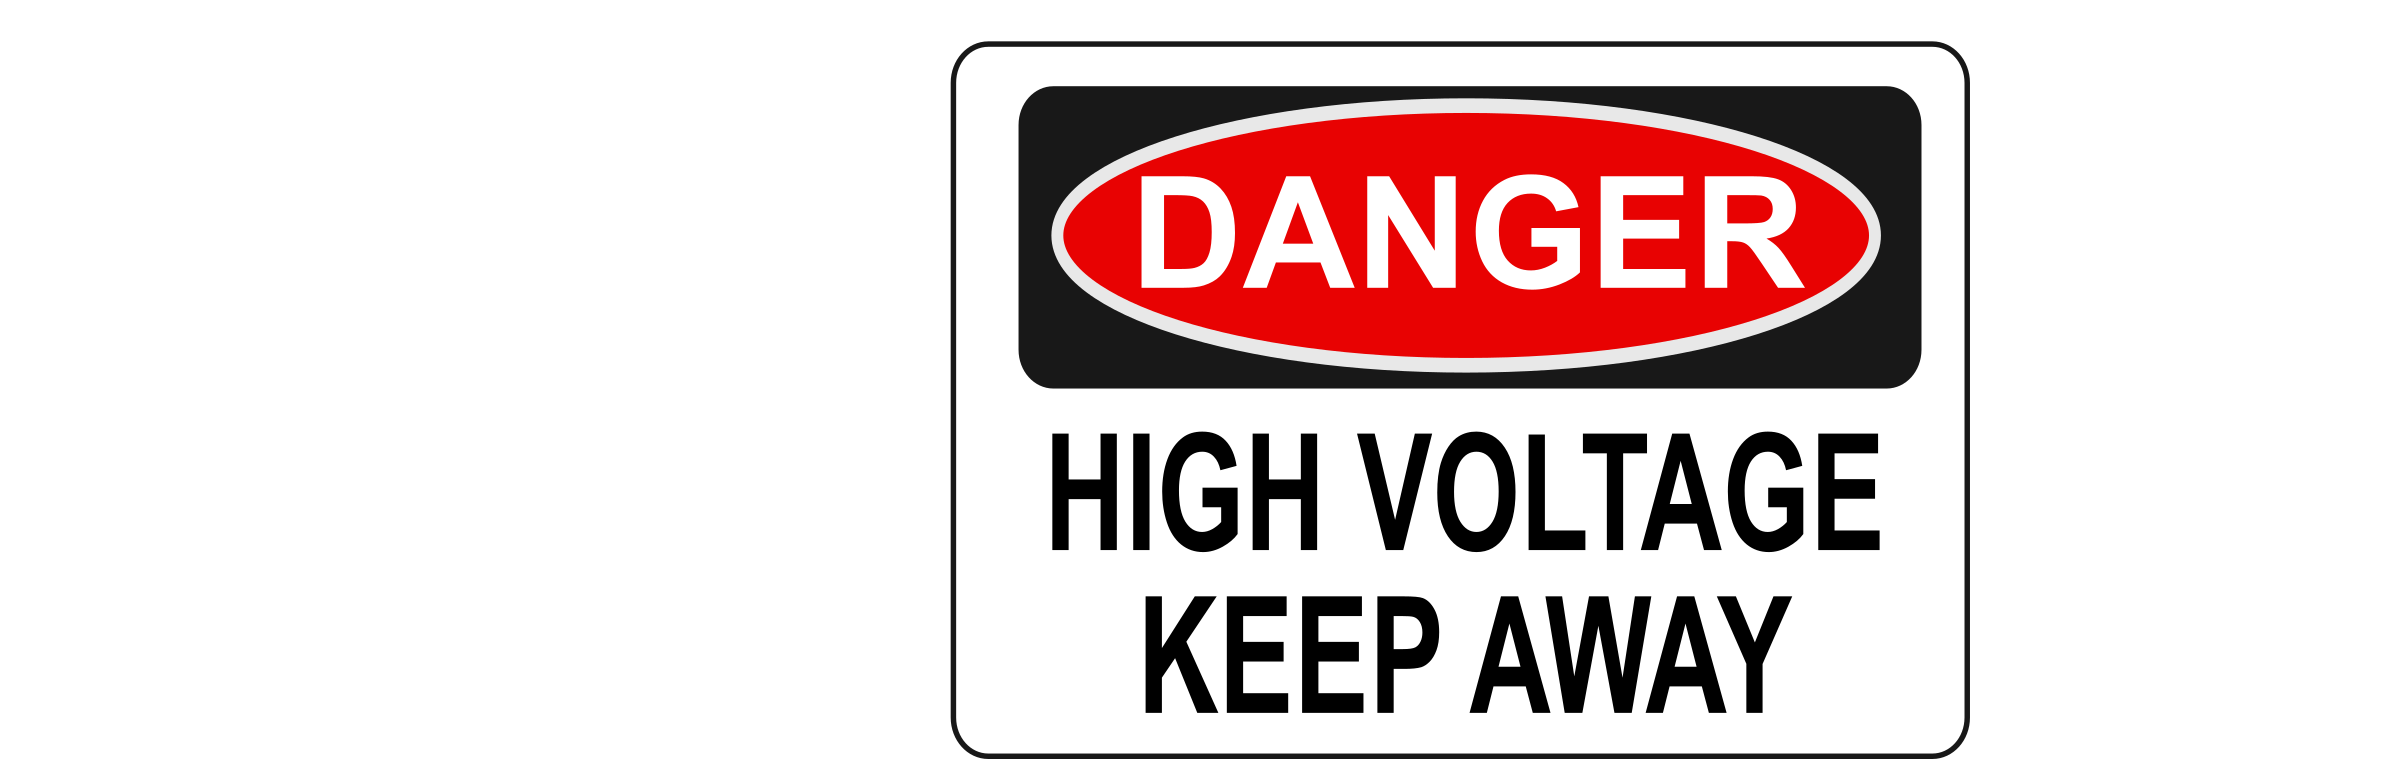 Danger - High Voltage Keep Away by Rfc1394